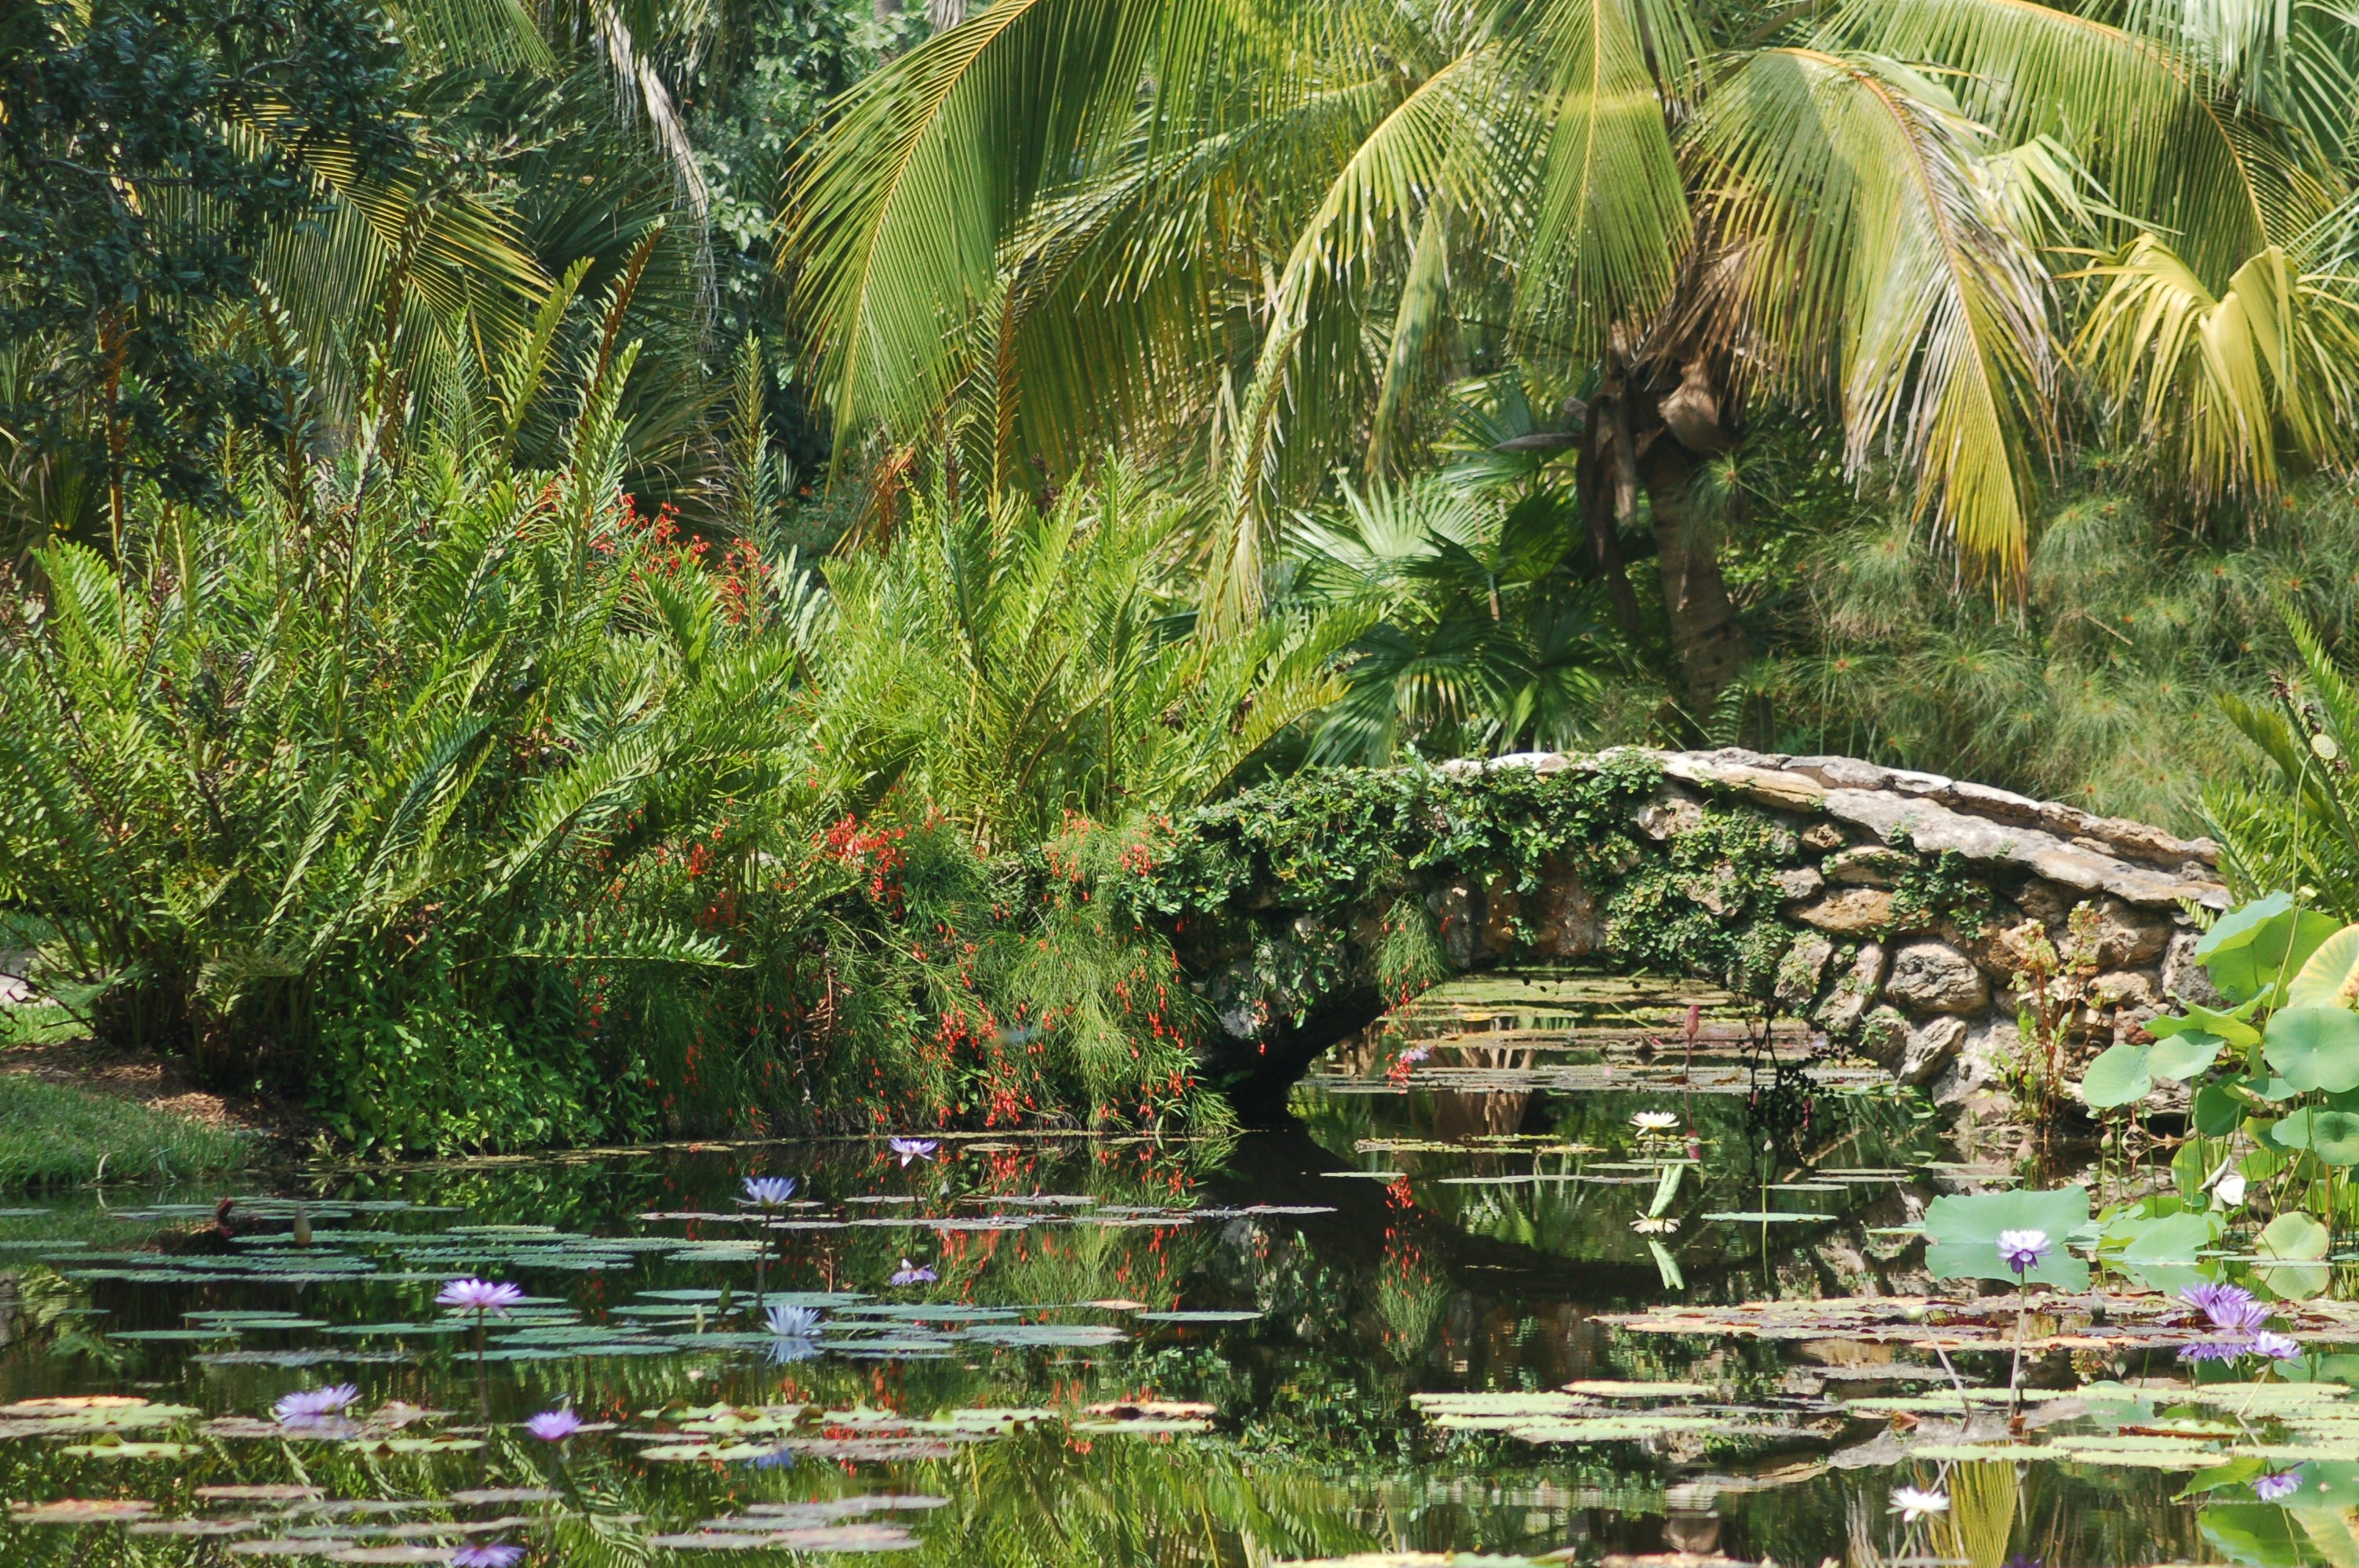 While In Vero Beach, You Should Visit The Historic Gardens At McKee  Botanical Gardens. The Boardwalk Near The Historic Jungle Trail Is Great  For Calorie ...